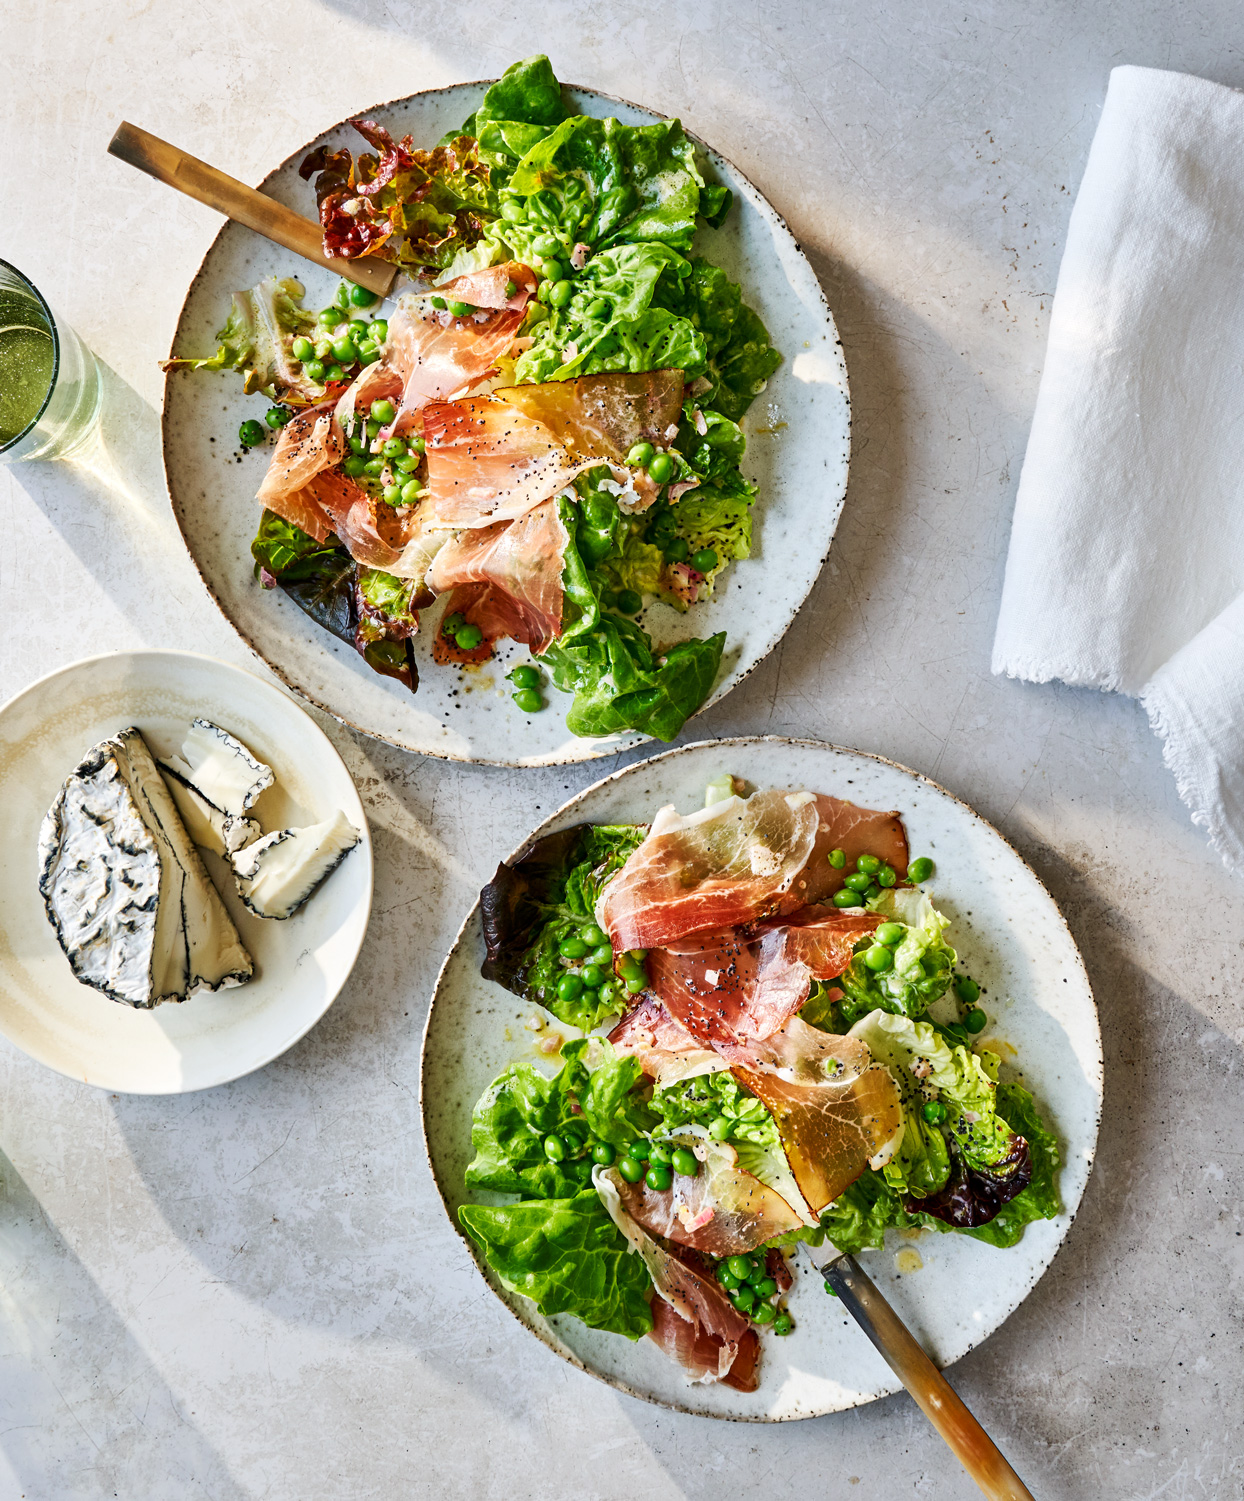 Soft Lettuces with Prosciutto, Peas, and Poppy Seeds